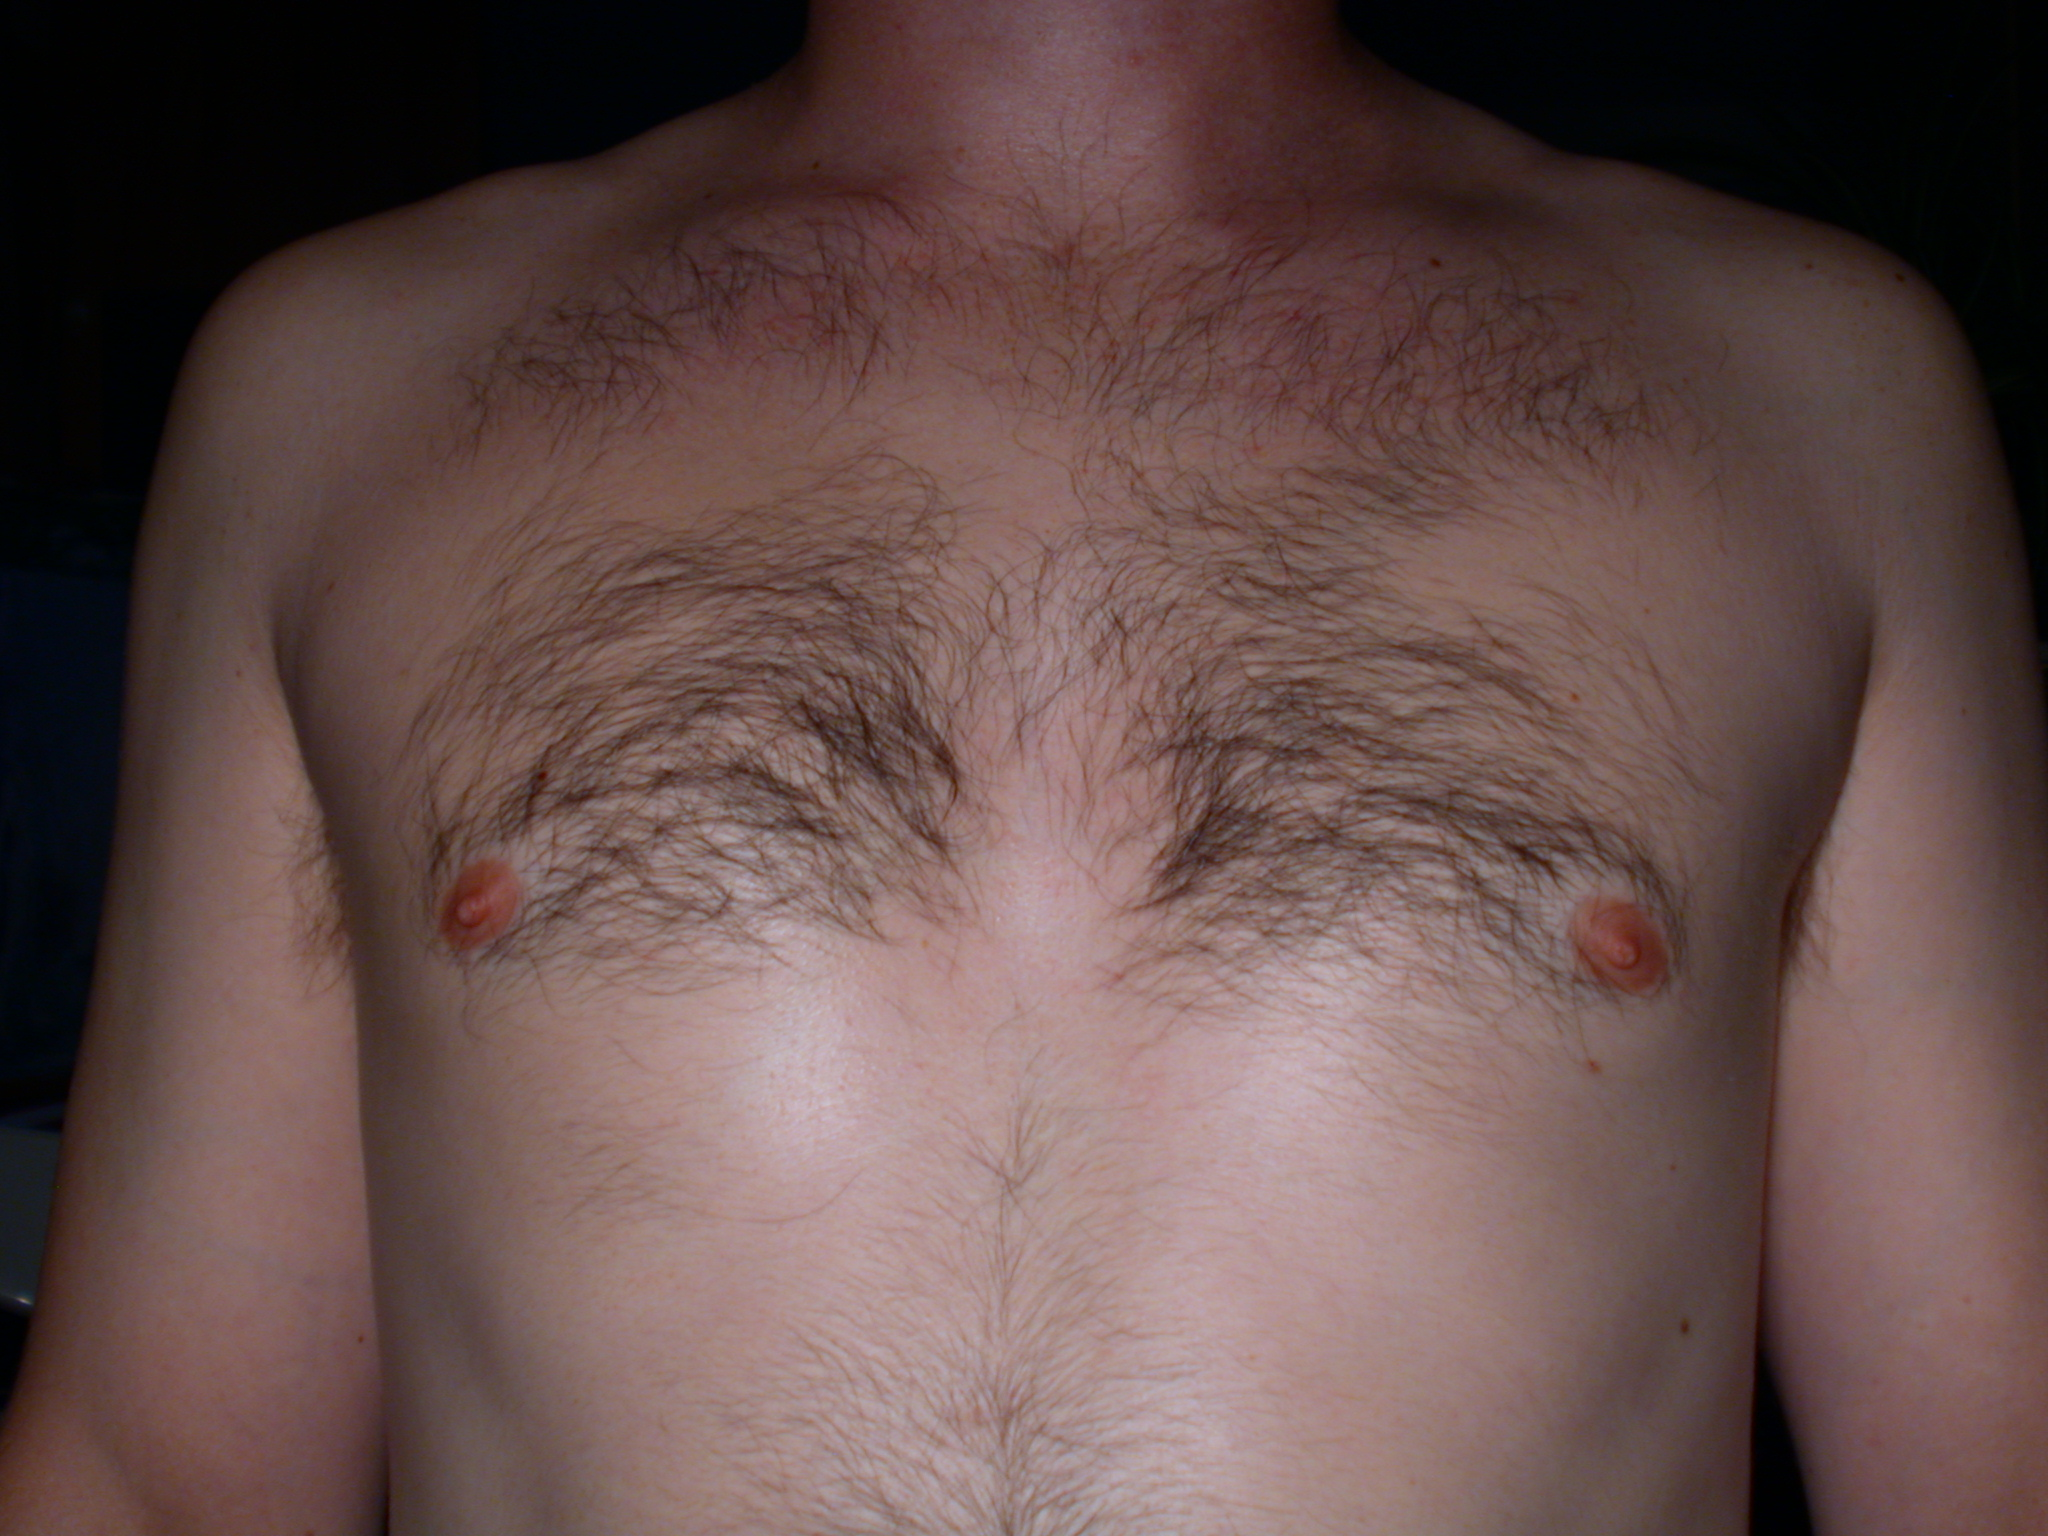 nature characters humanparts bk1 bodykit male texture chest chesthair nipple nipples front hair hairy man